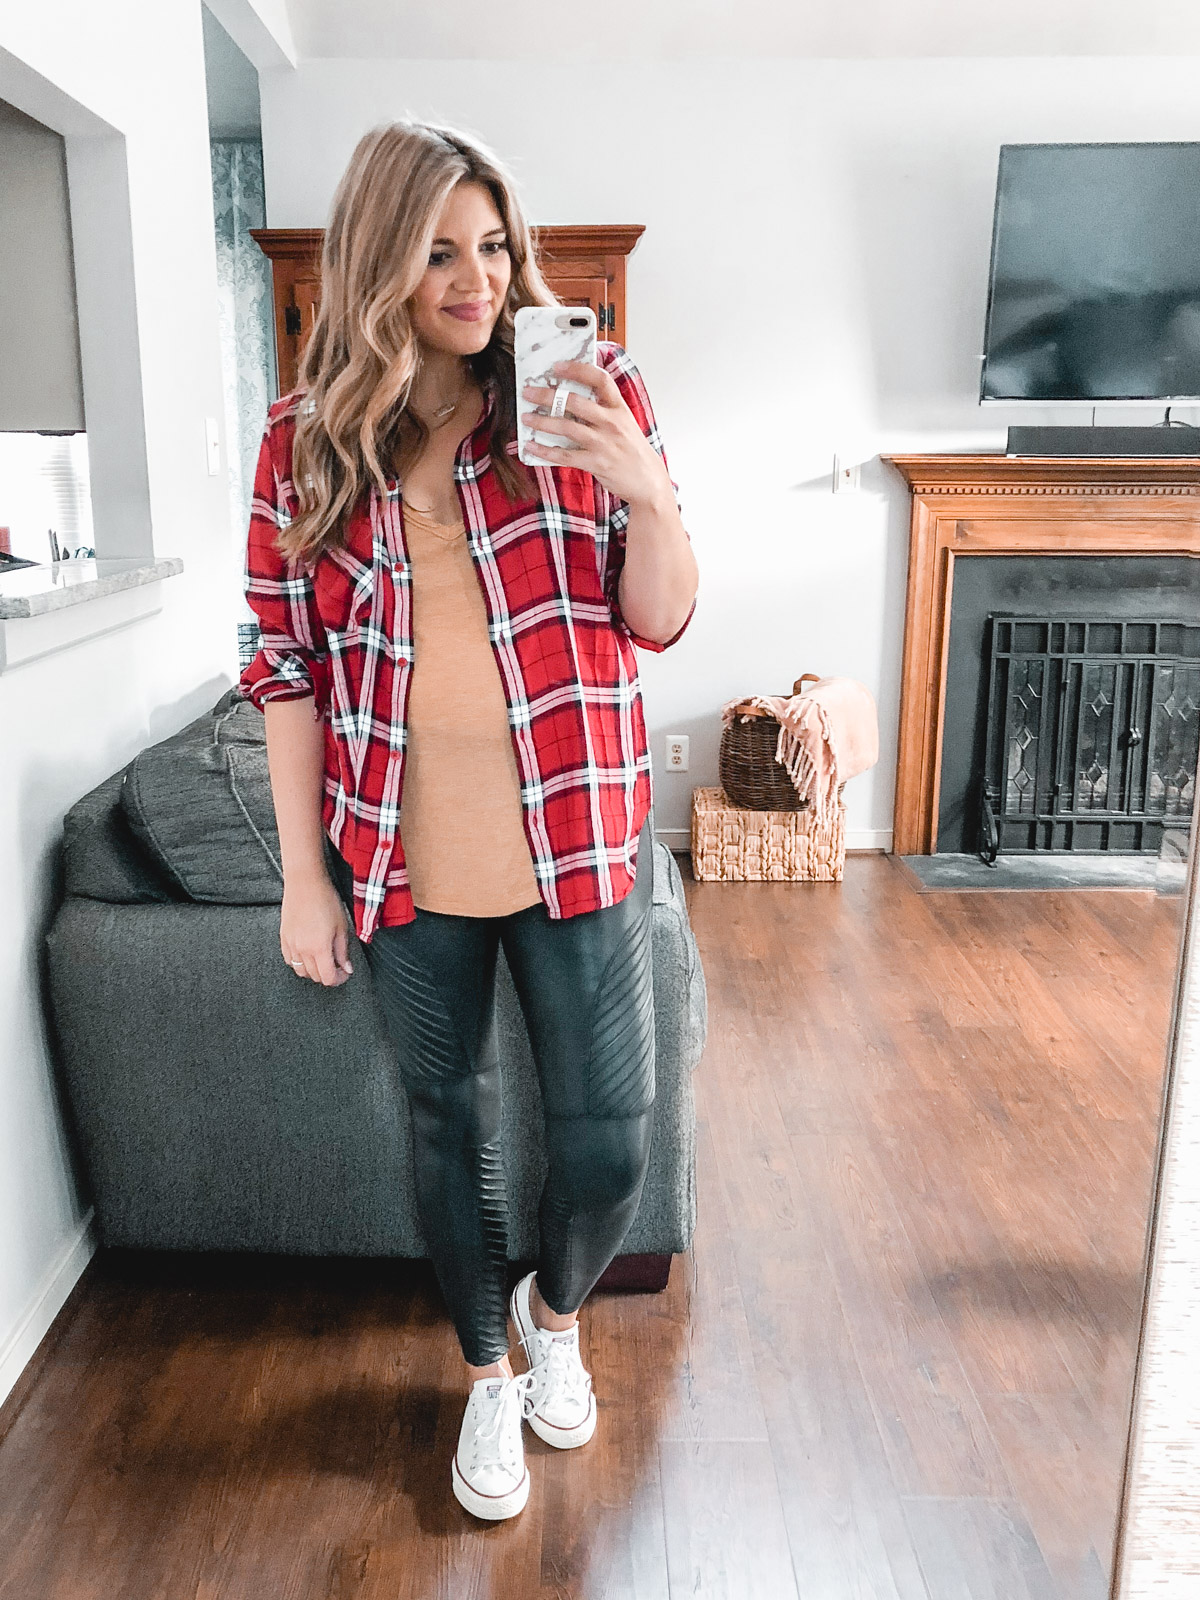 best plaid top outfits 2018 - Need plaid top outfit ideas? I'm sharing one $31 plaid top styled 15 different ways on bylaurenm.com!